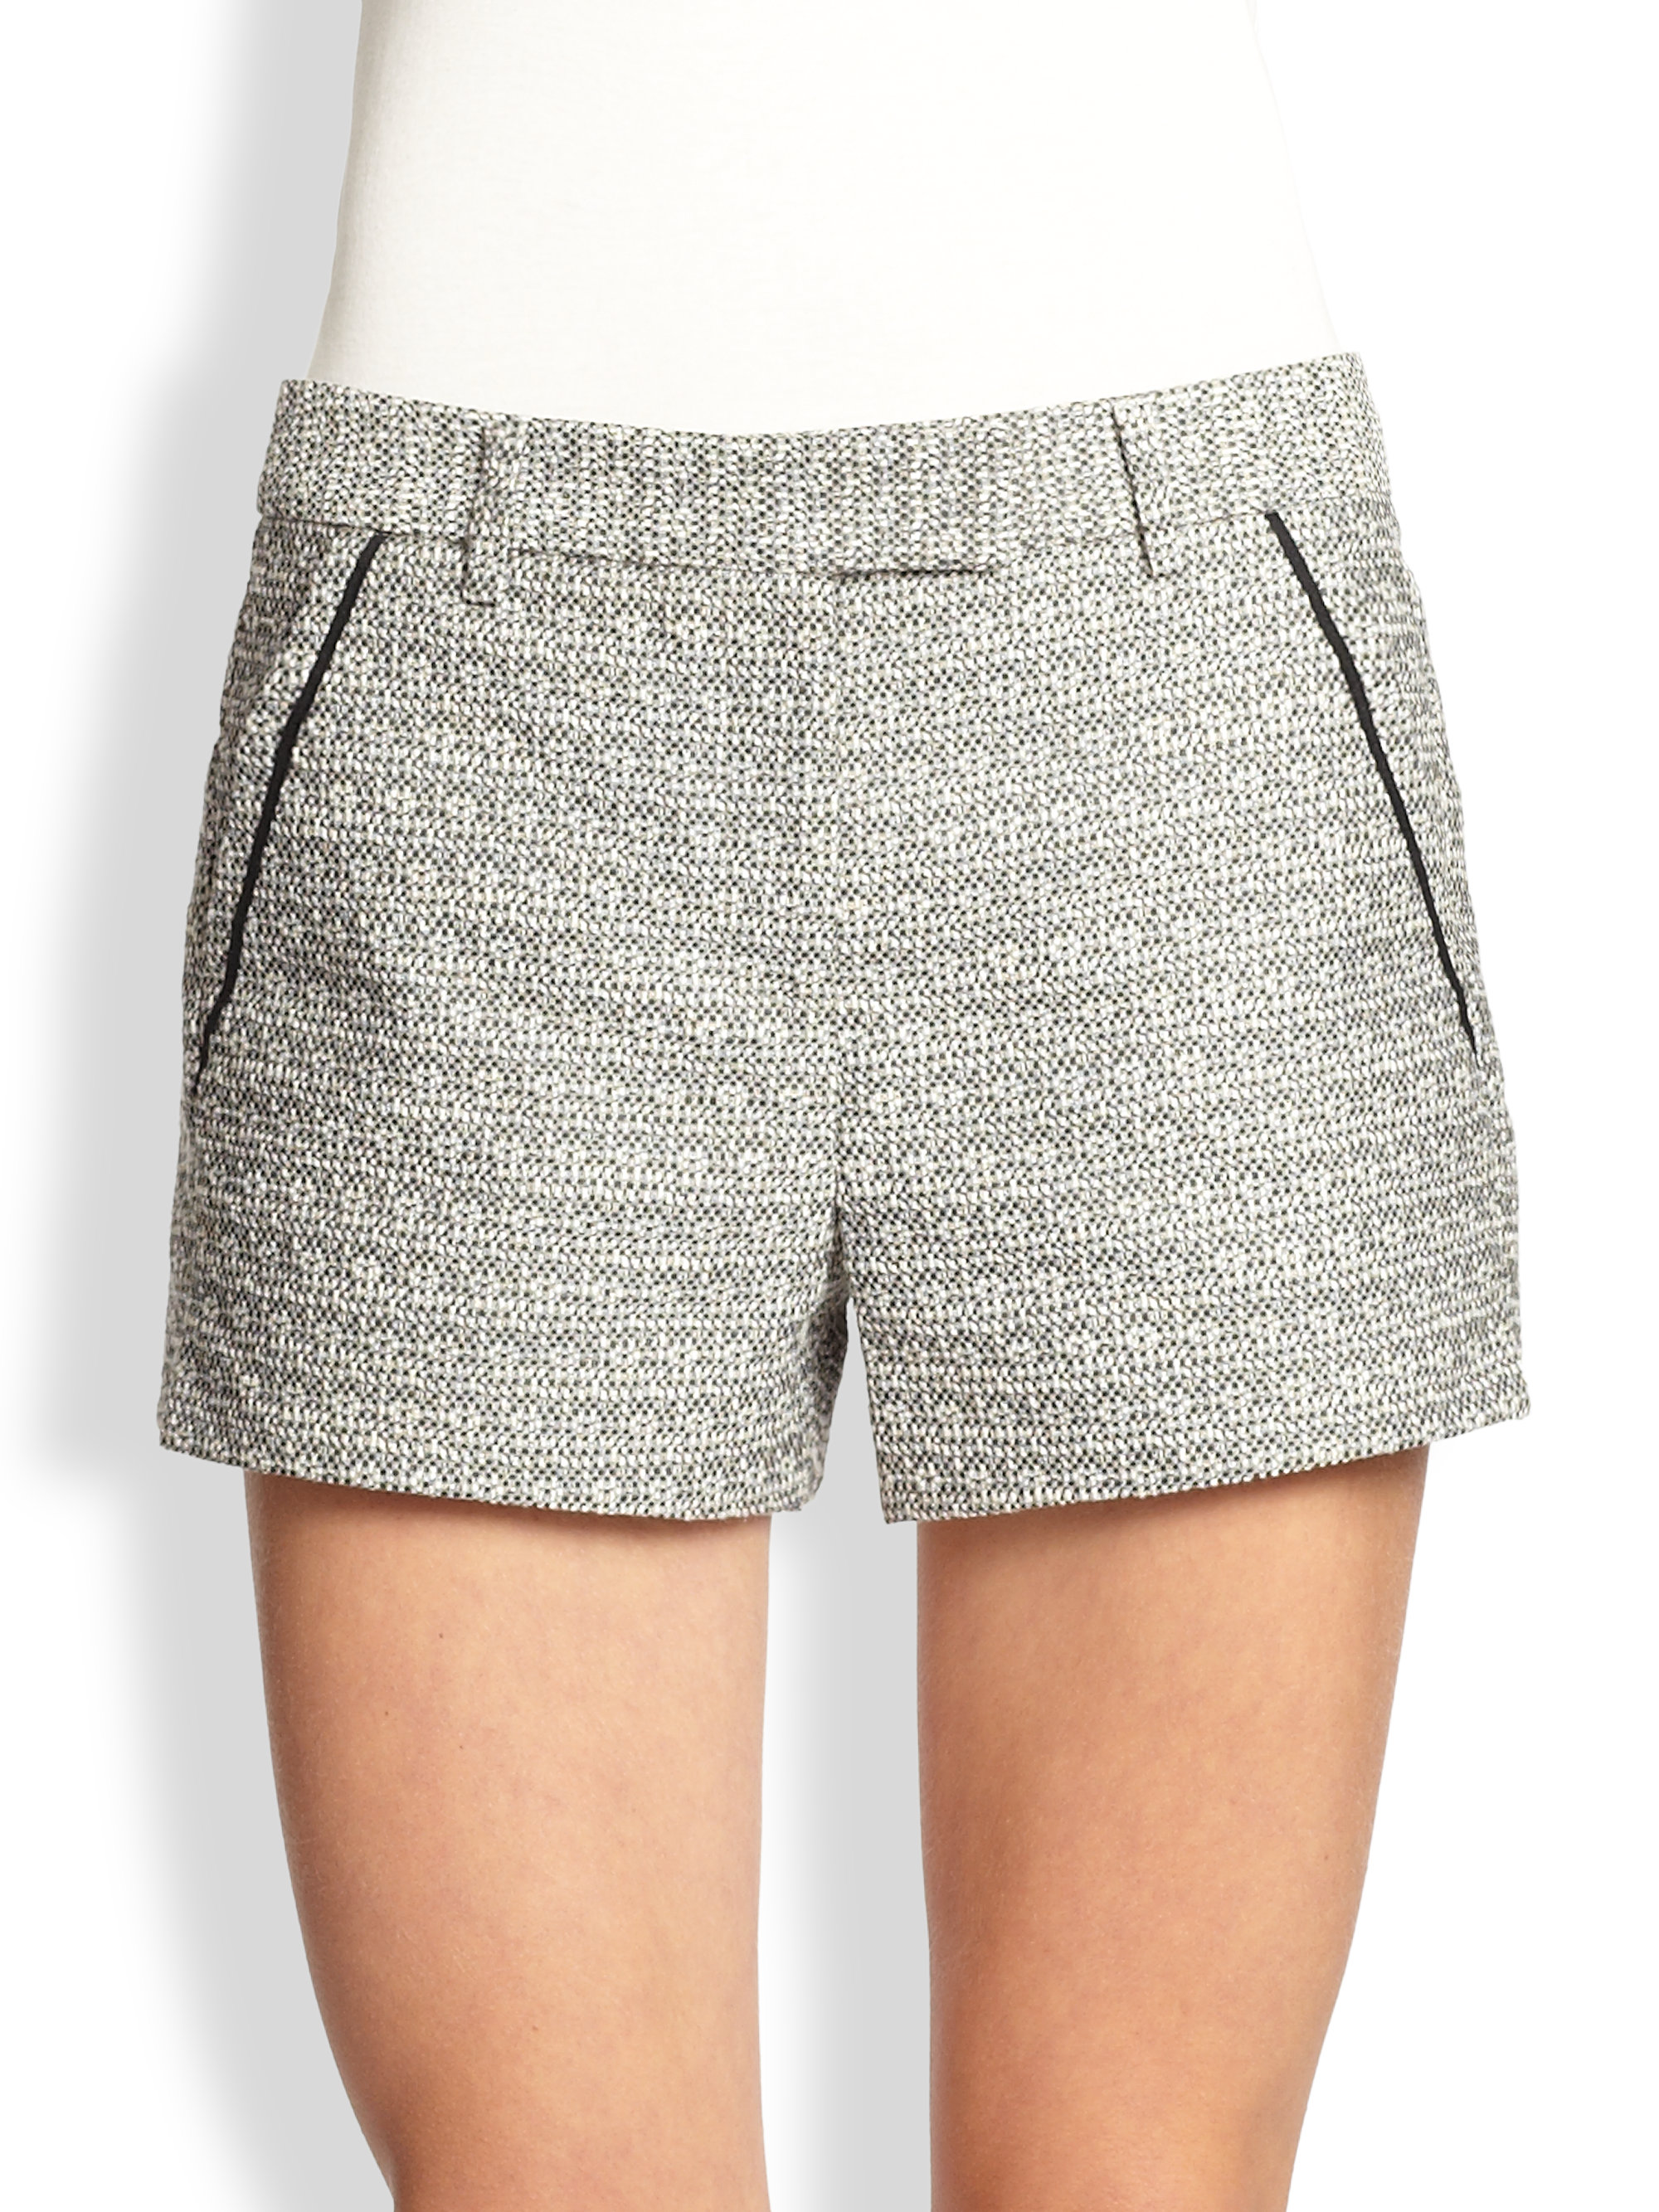 Find tweed shorts at ShopStyle. Shop the latest collection of tweed shorts from the most popular stores - all in one place.